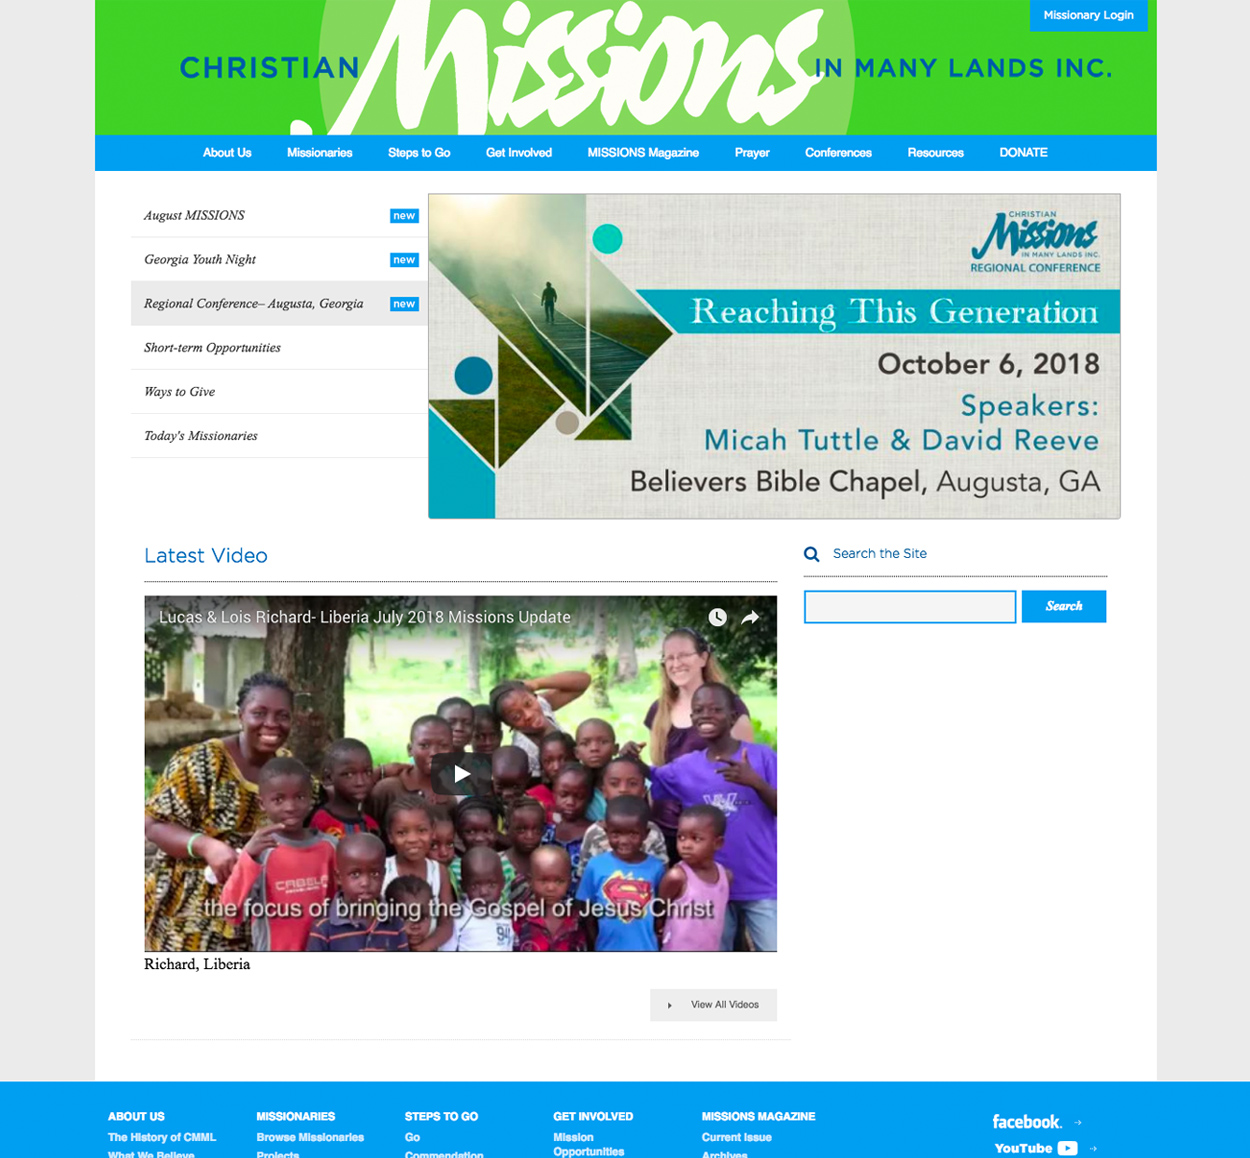 Christian Missions in Many Lands Website